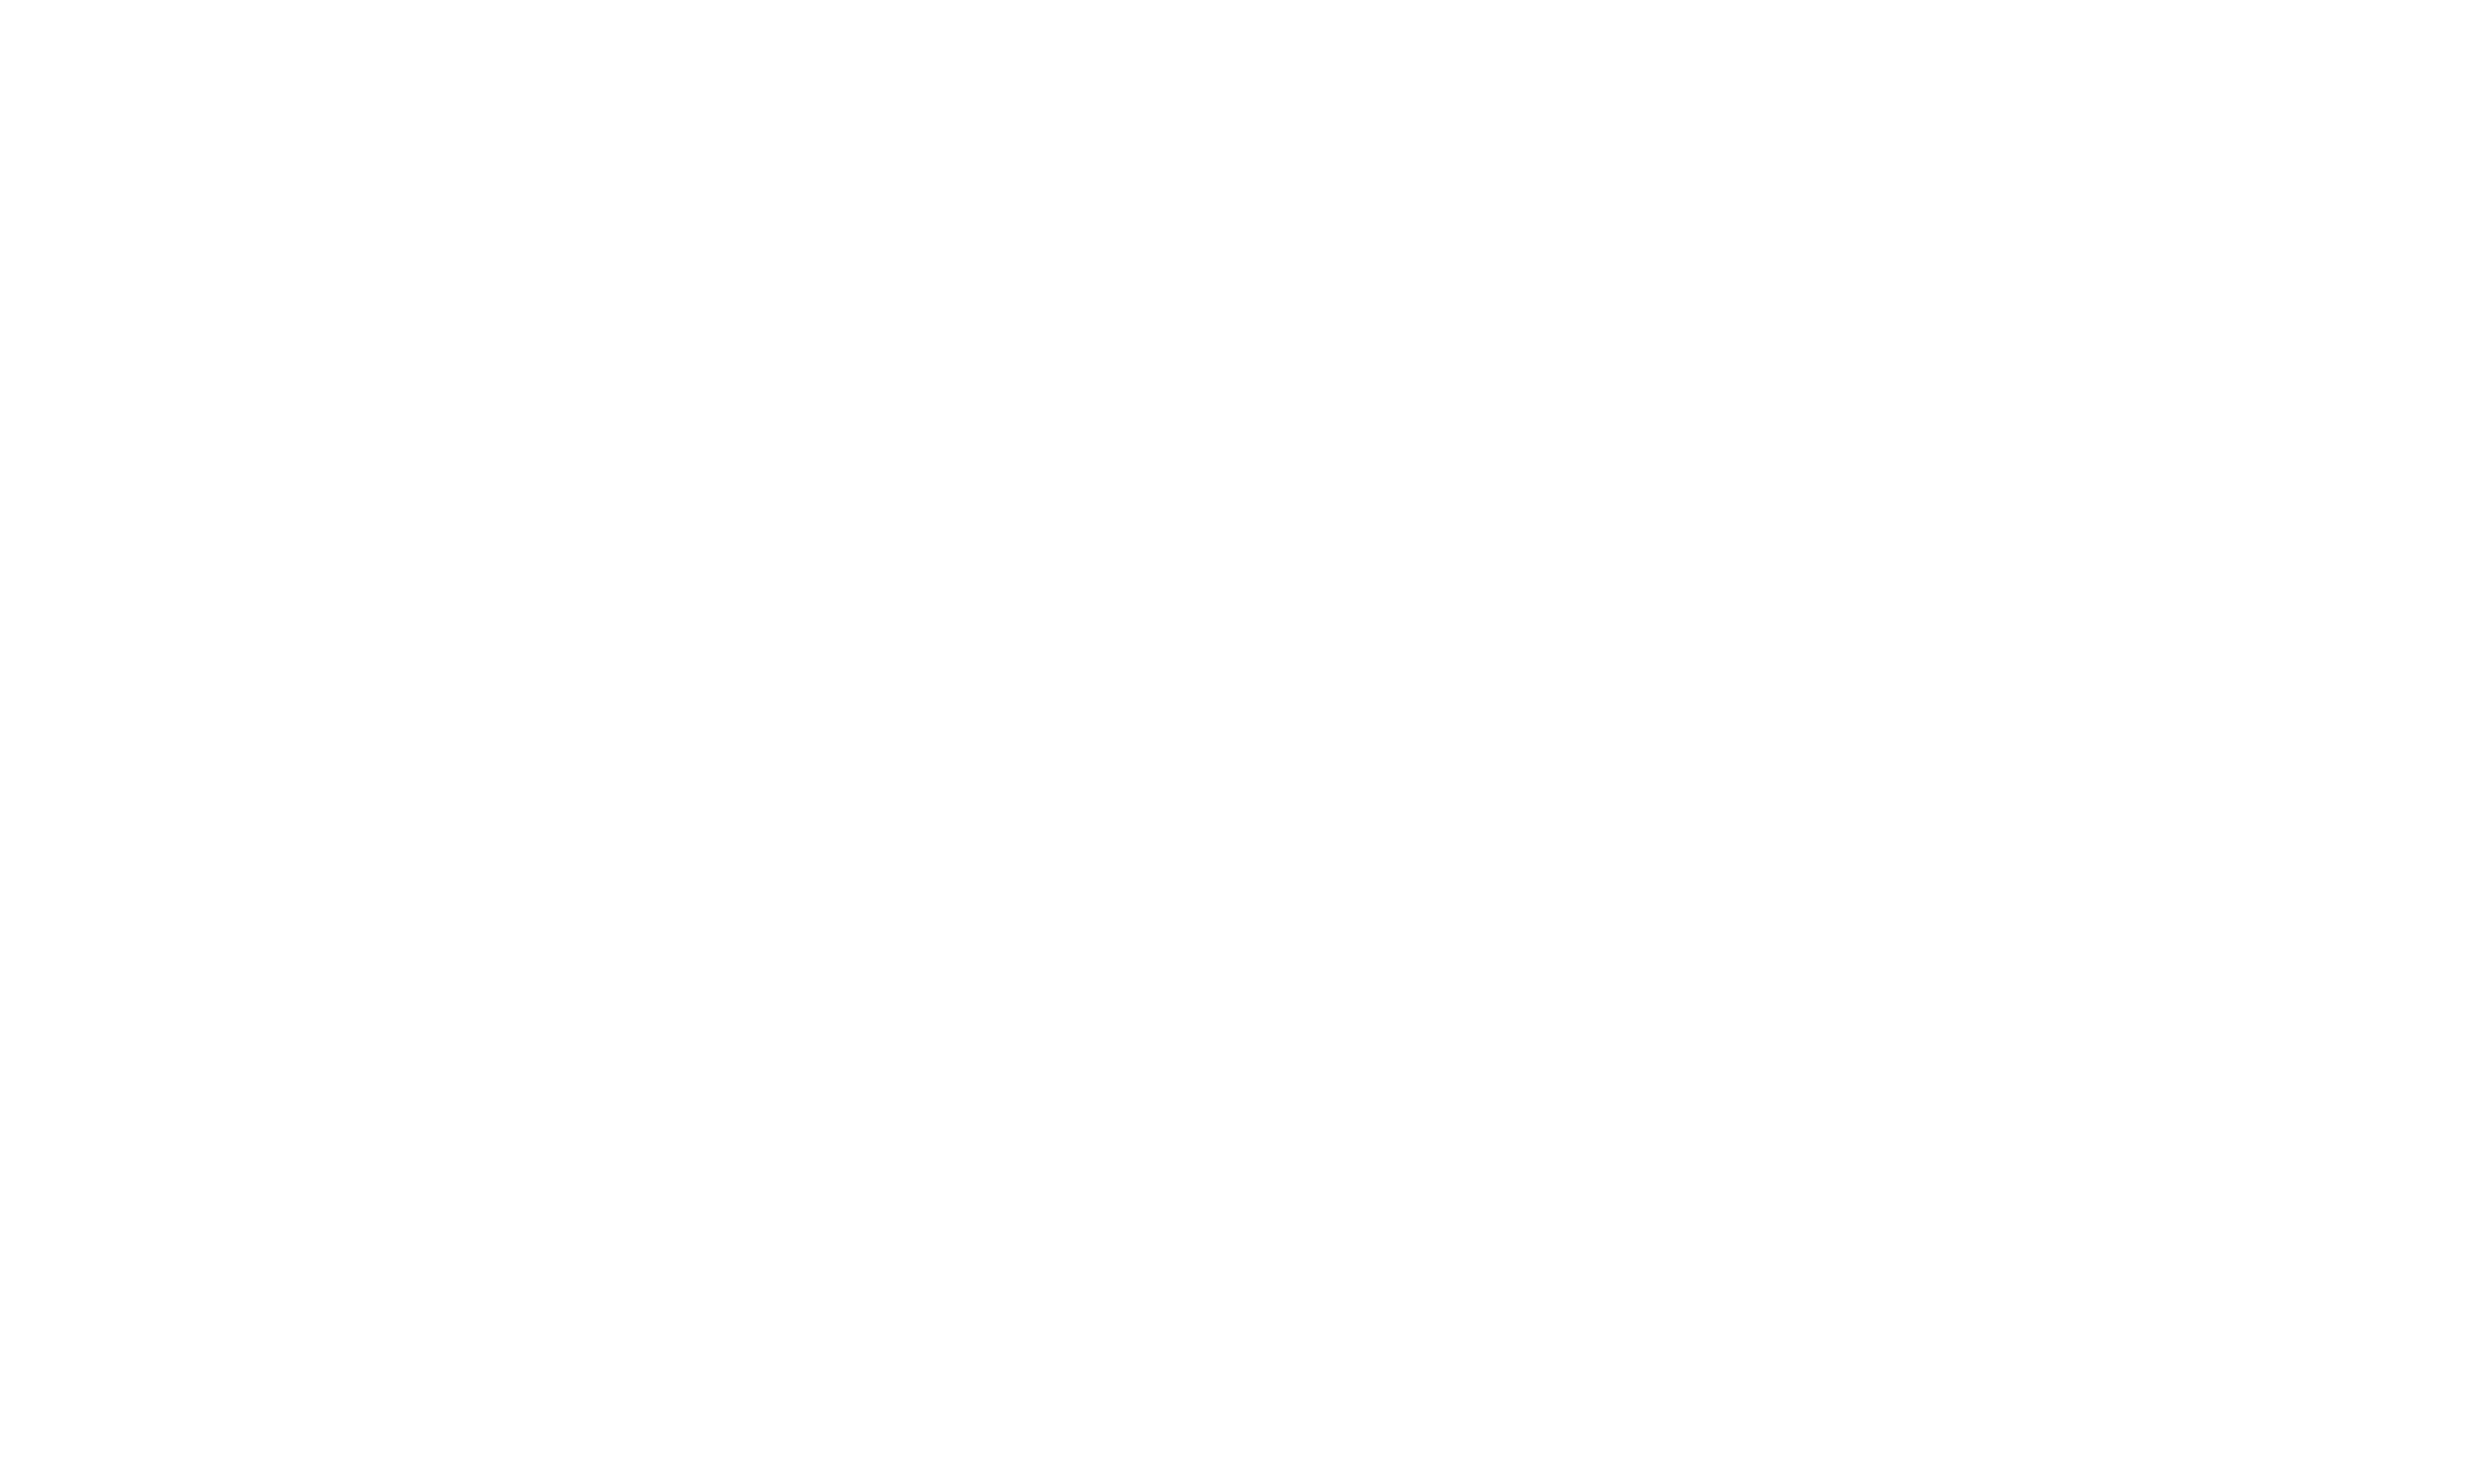 Travel Capitalist Ventures – travel focused investments.